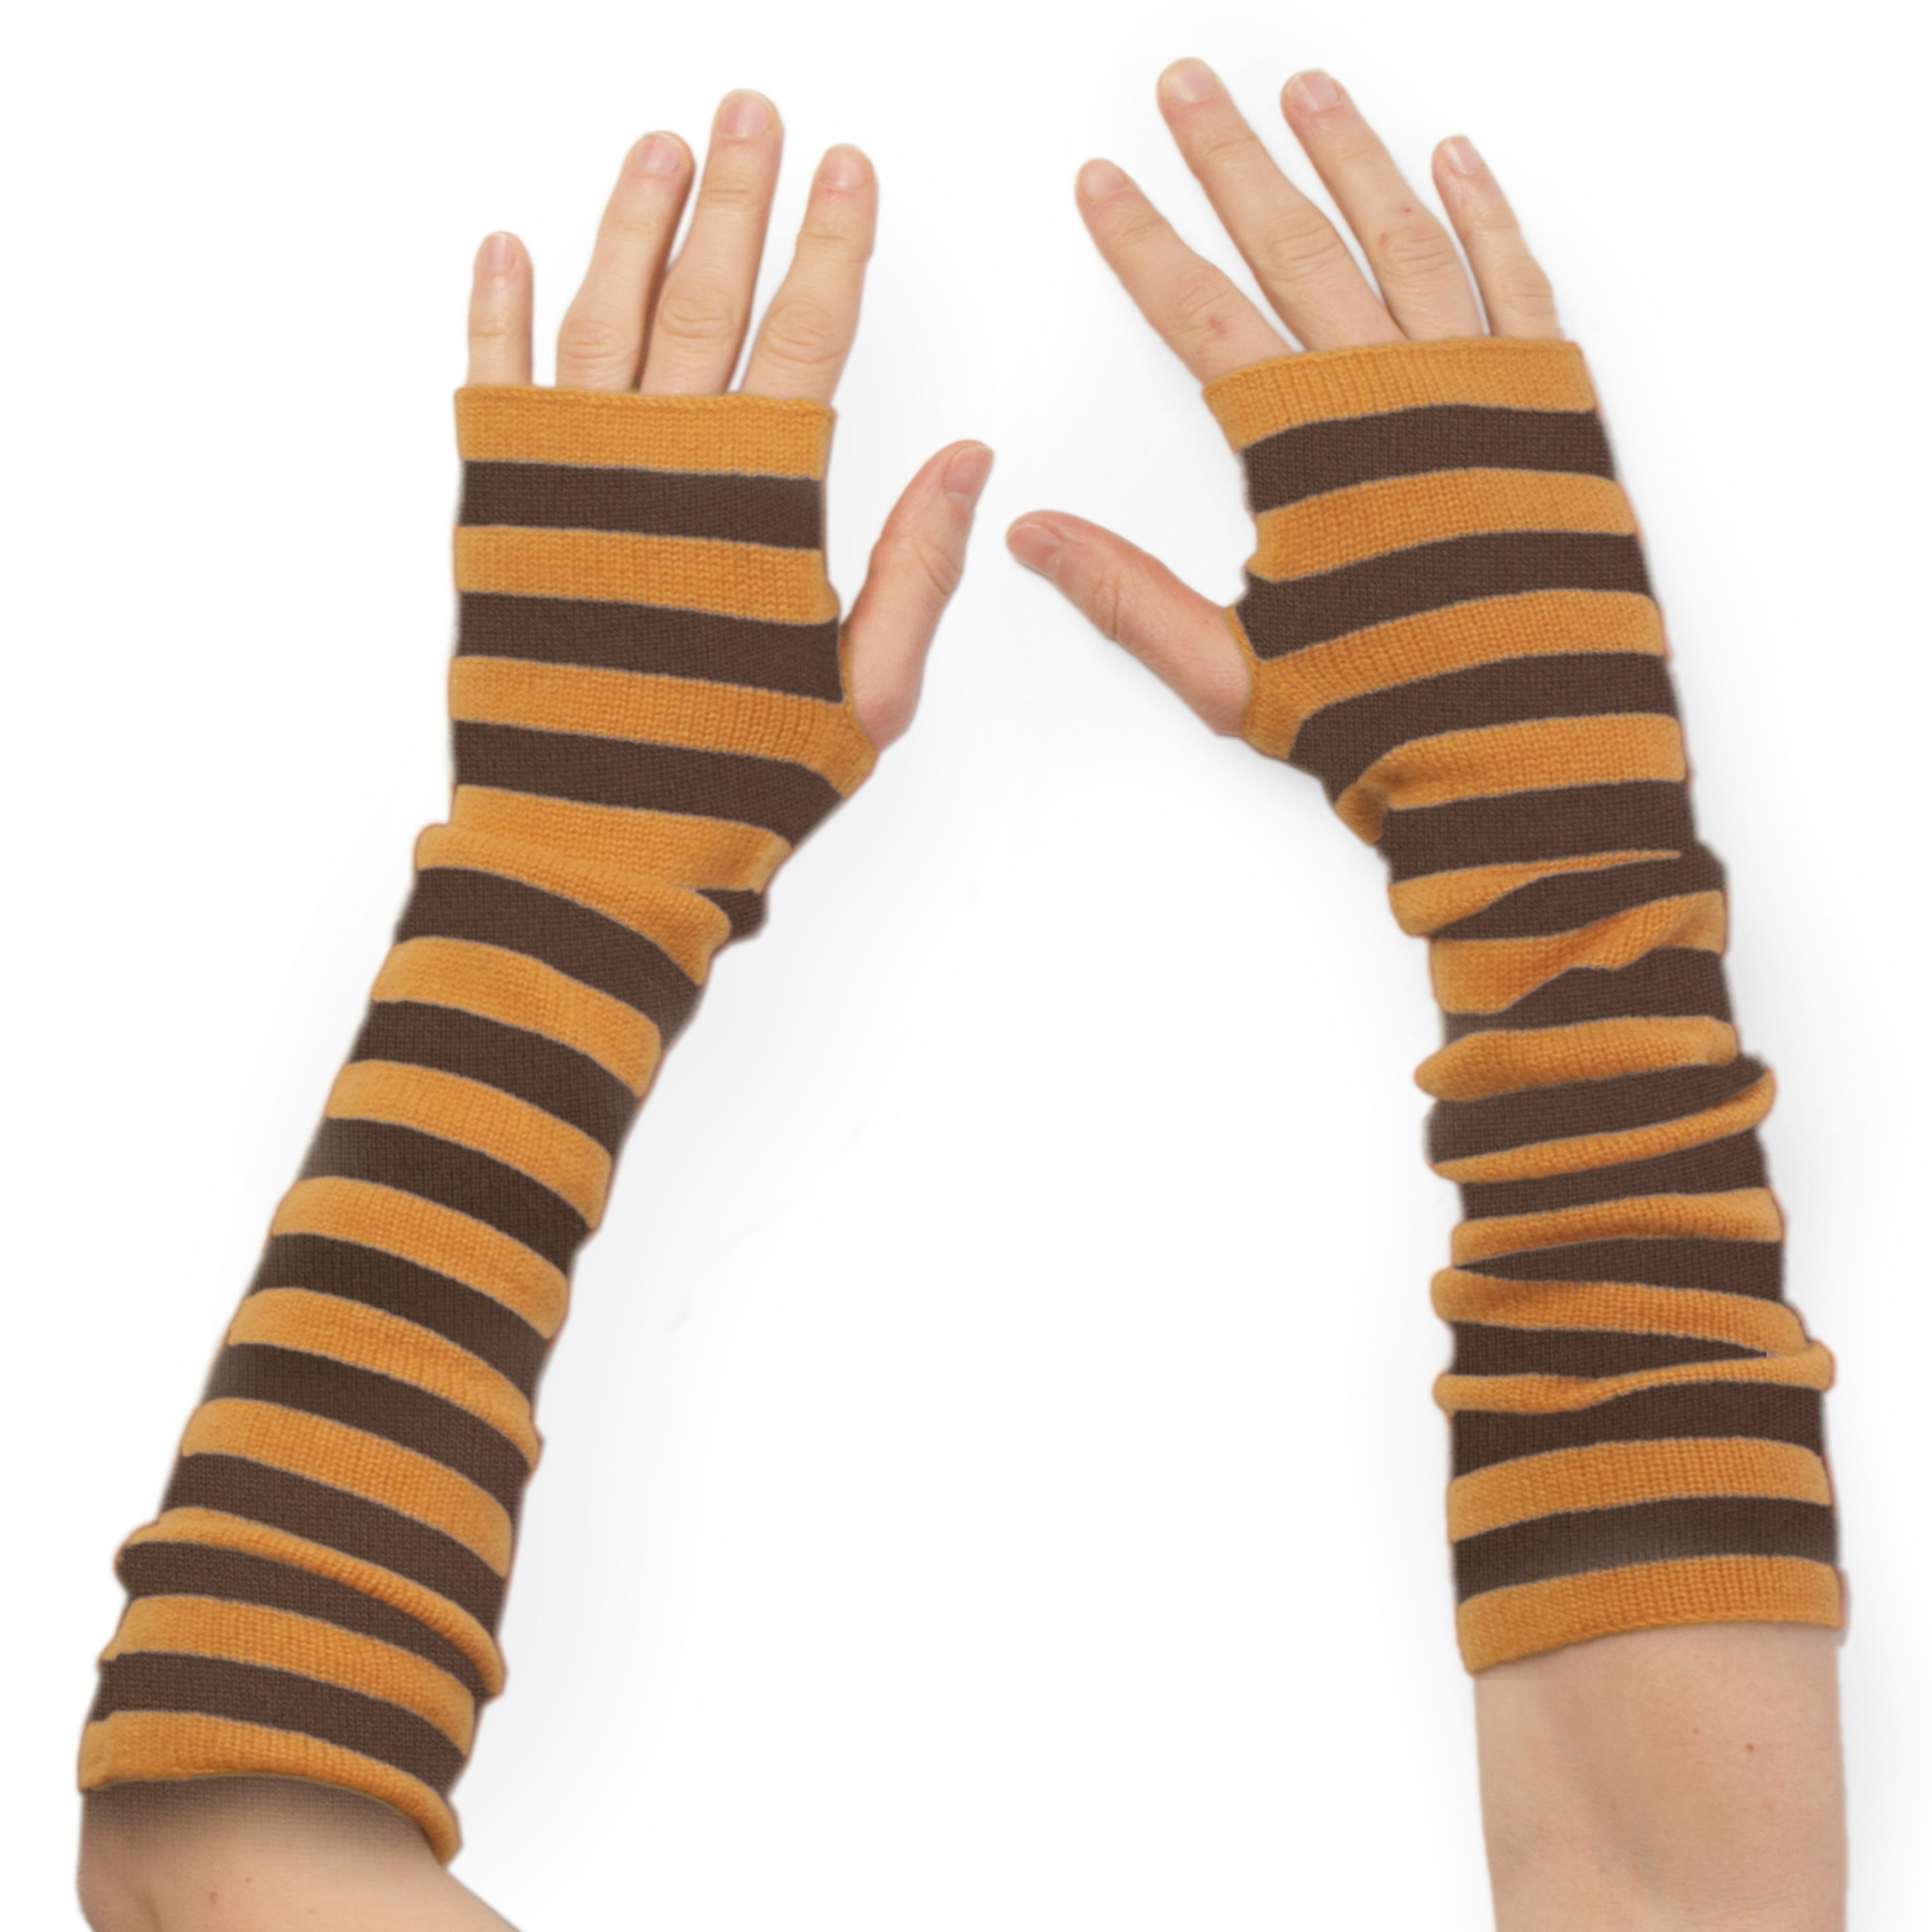 Stripey Wristwarmers - 100% Cashmere - Ginger Bread/Sepia